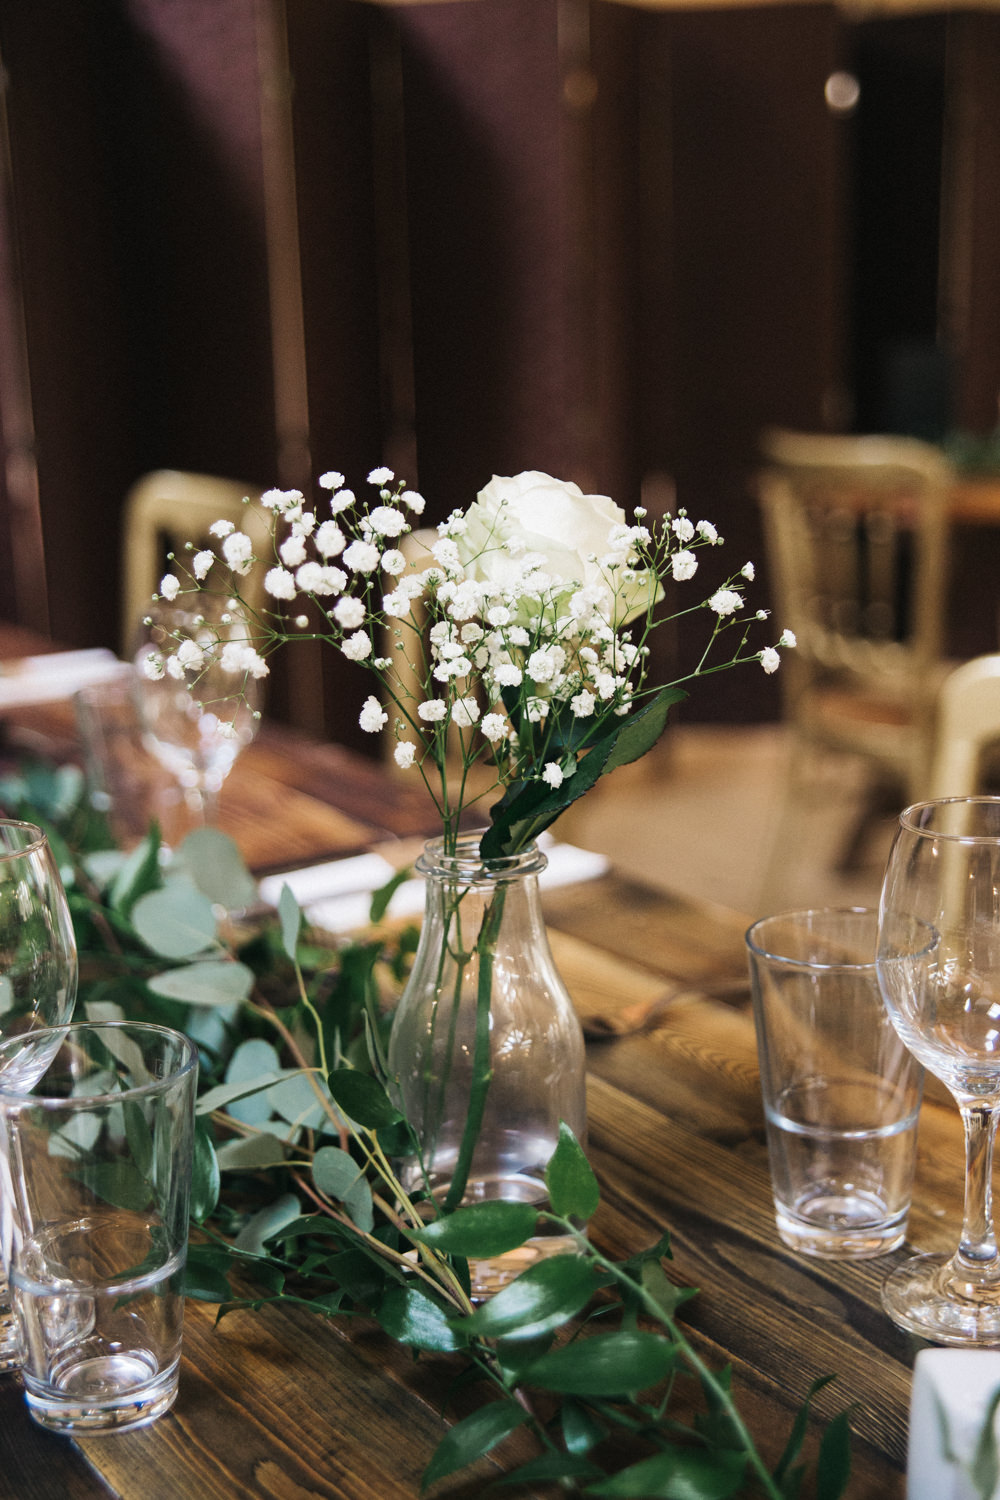 Milk Bottle Flowers White Rose Gypsophila Greenery Swag Runner Table Wray's Barn Whinstone View Wedding Sally T Photography